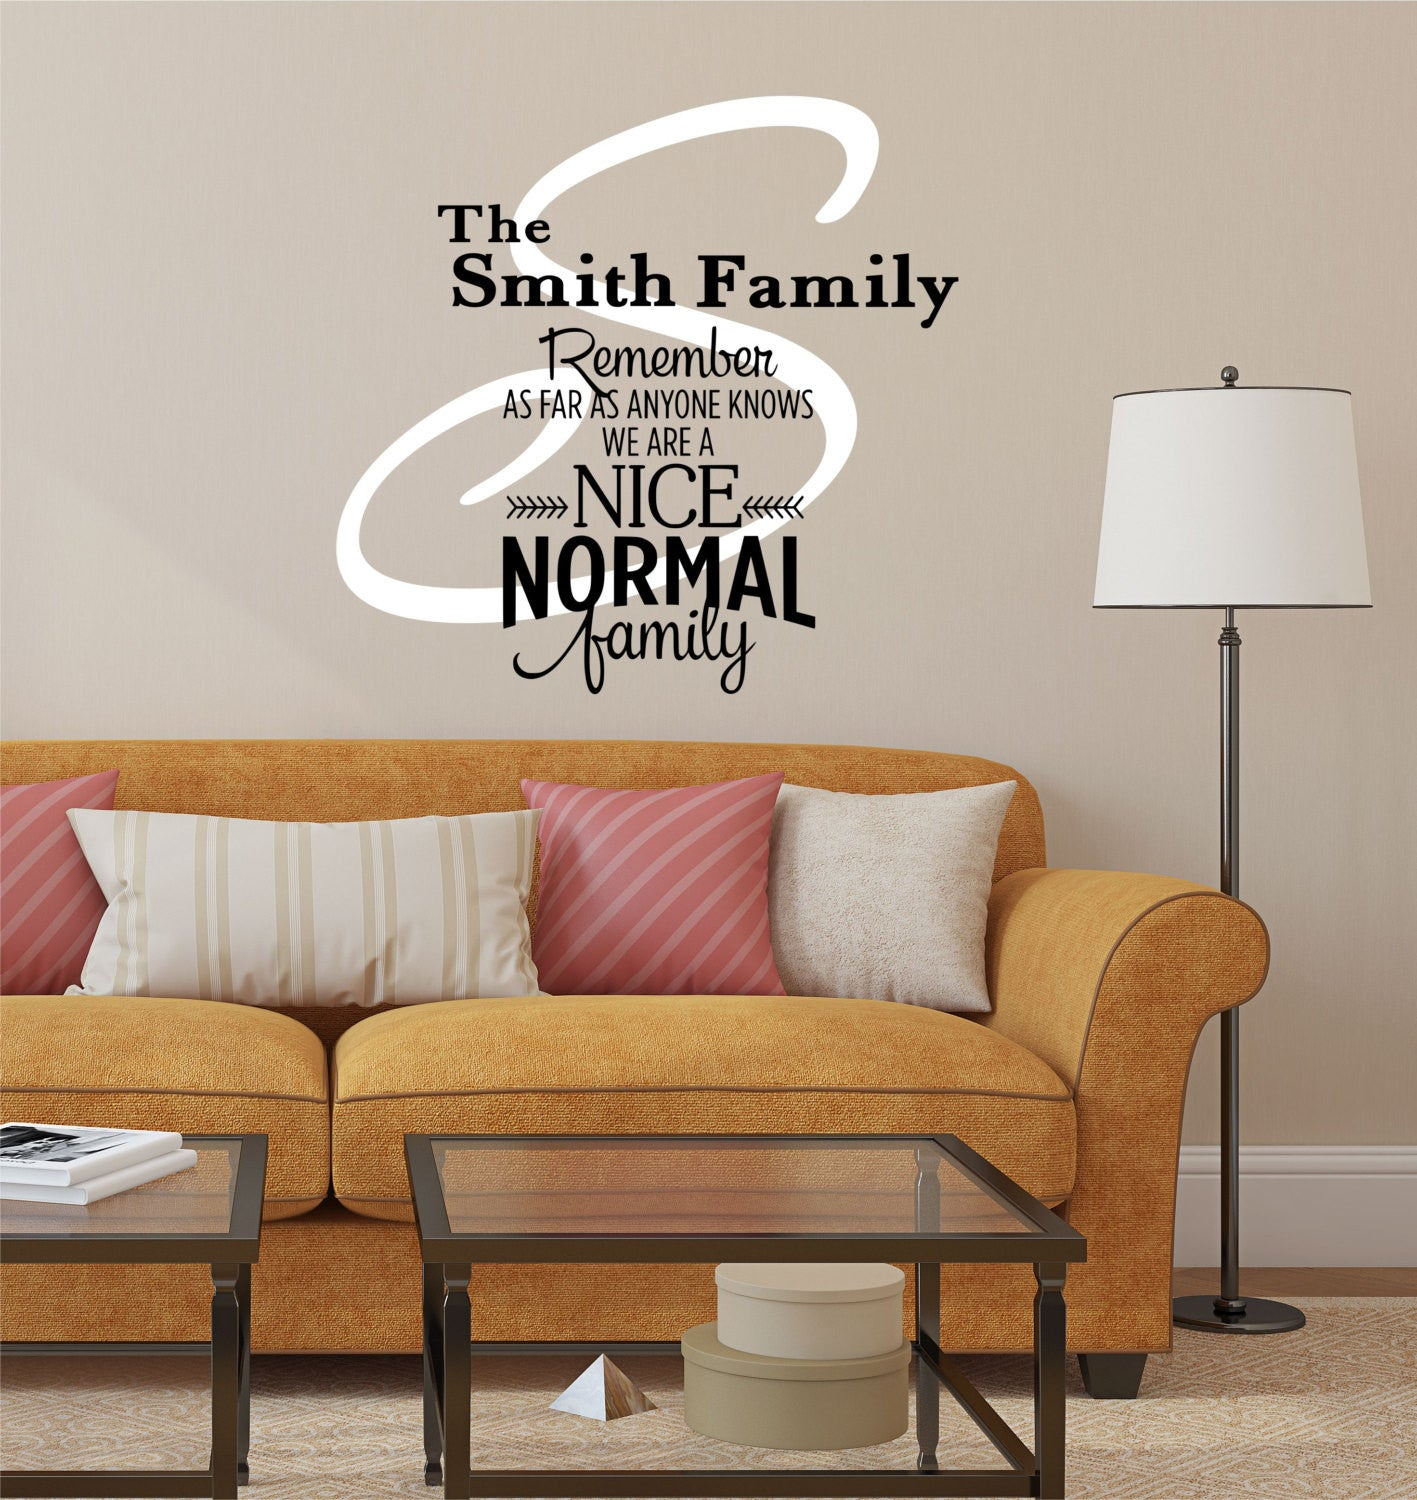 Family Wall Decor Family Name Decal Decor Designs Decals Nice Normal Family  Pers